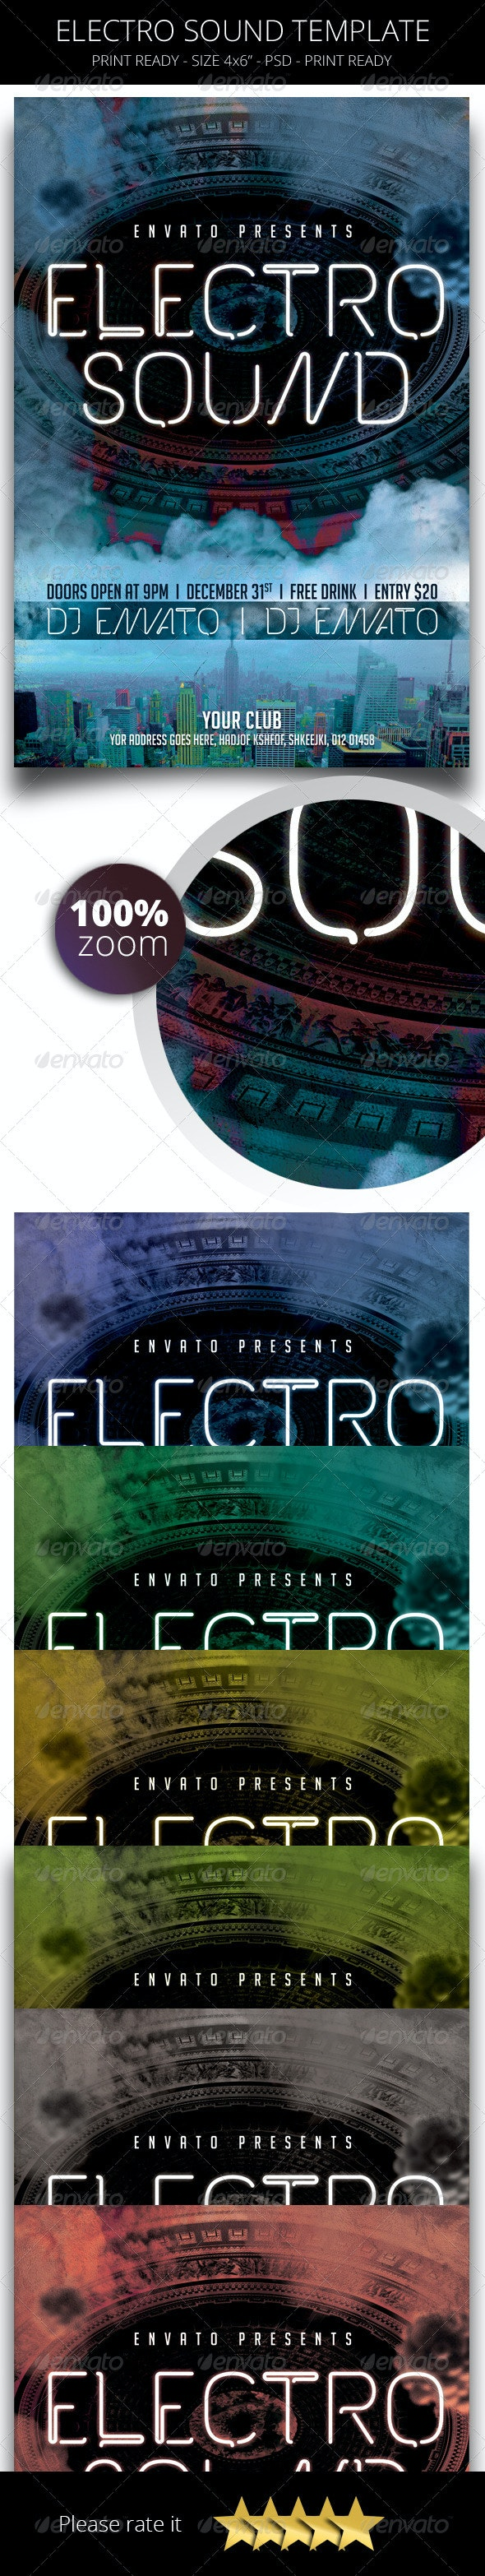 Electro Sound Flyer Template - Concerts Events